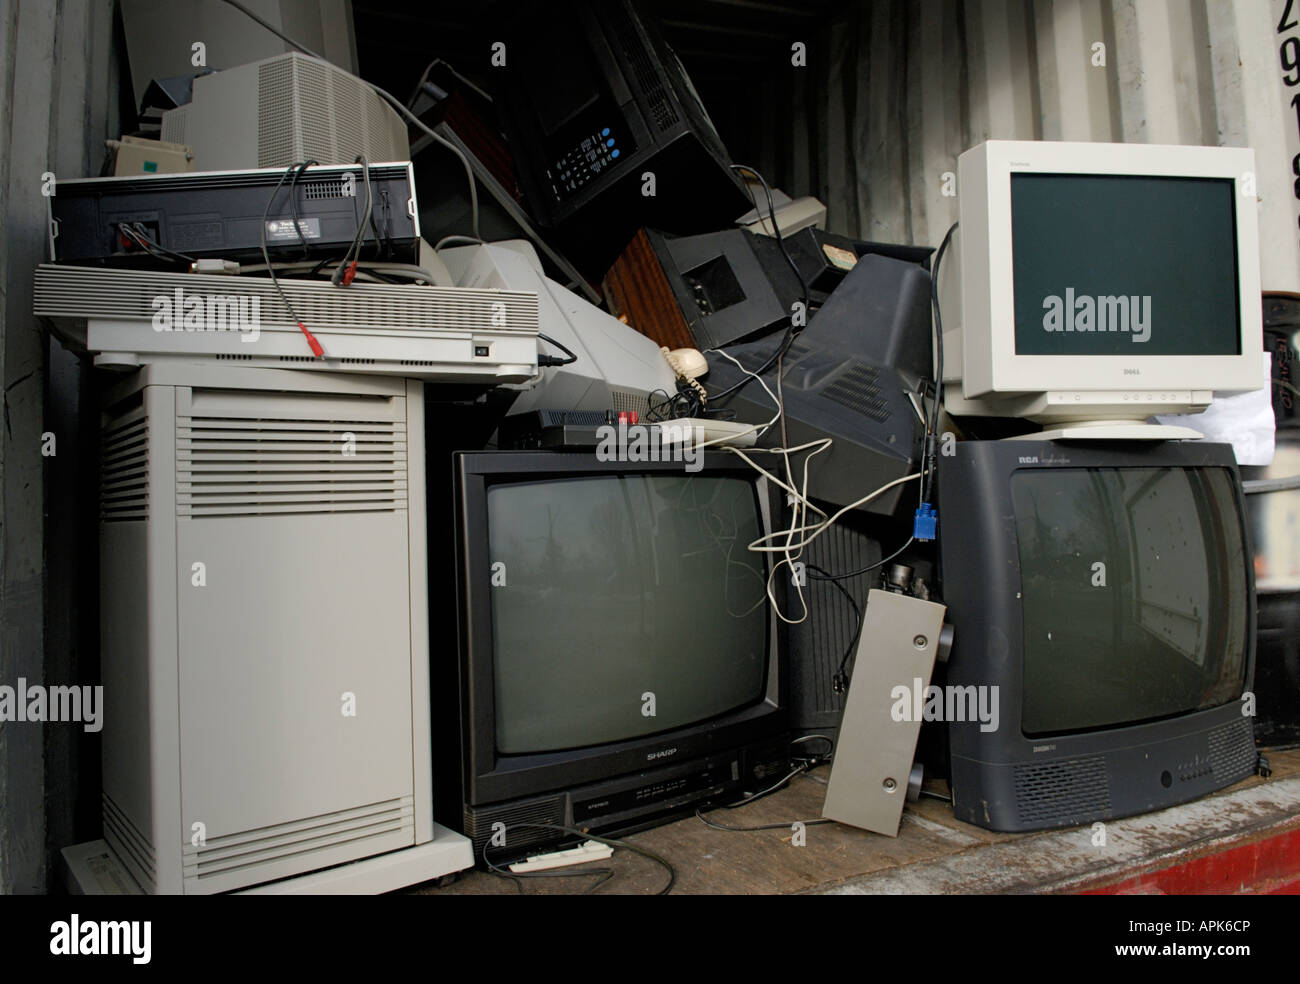 Electronic Waste Stock Photos Images Alamy Circuit Board Recycling Machine Pcb An Electronics E Collection Area The Is Part Of A Municipal Center